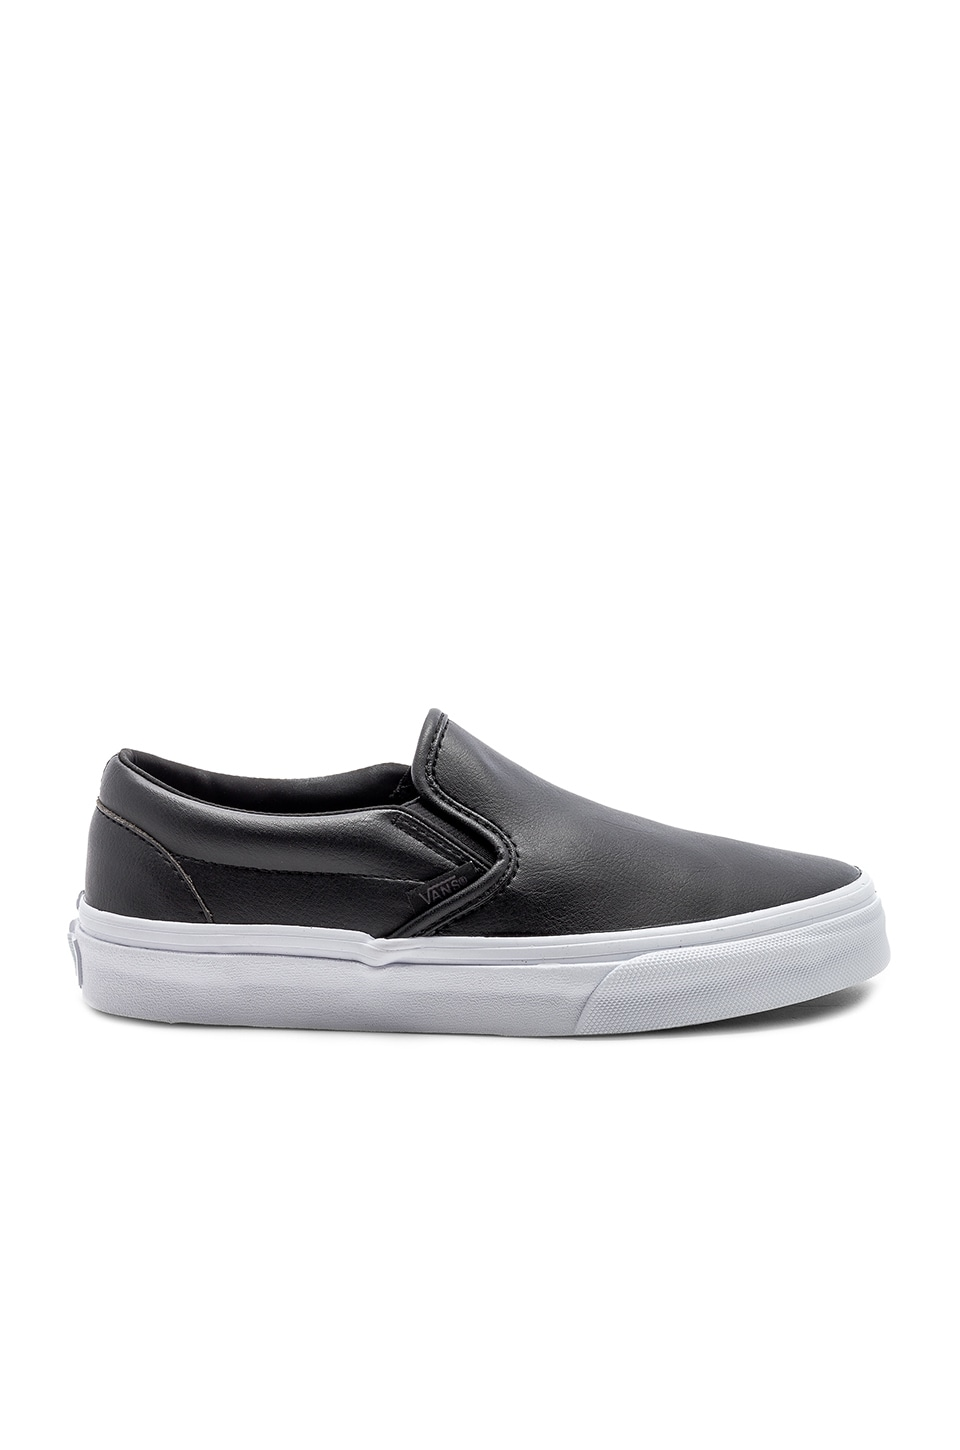 Vans Slip-On in Black